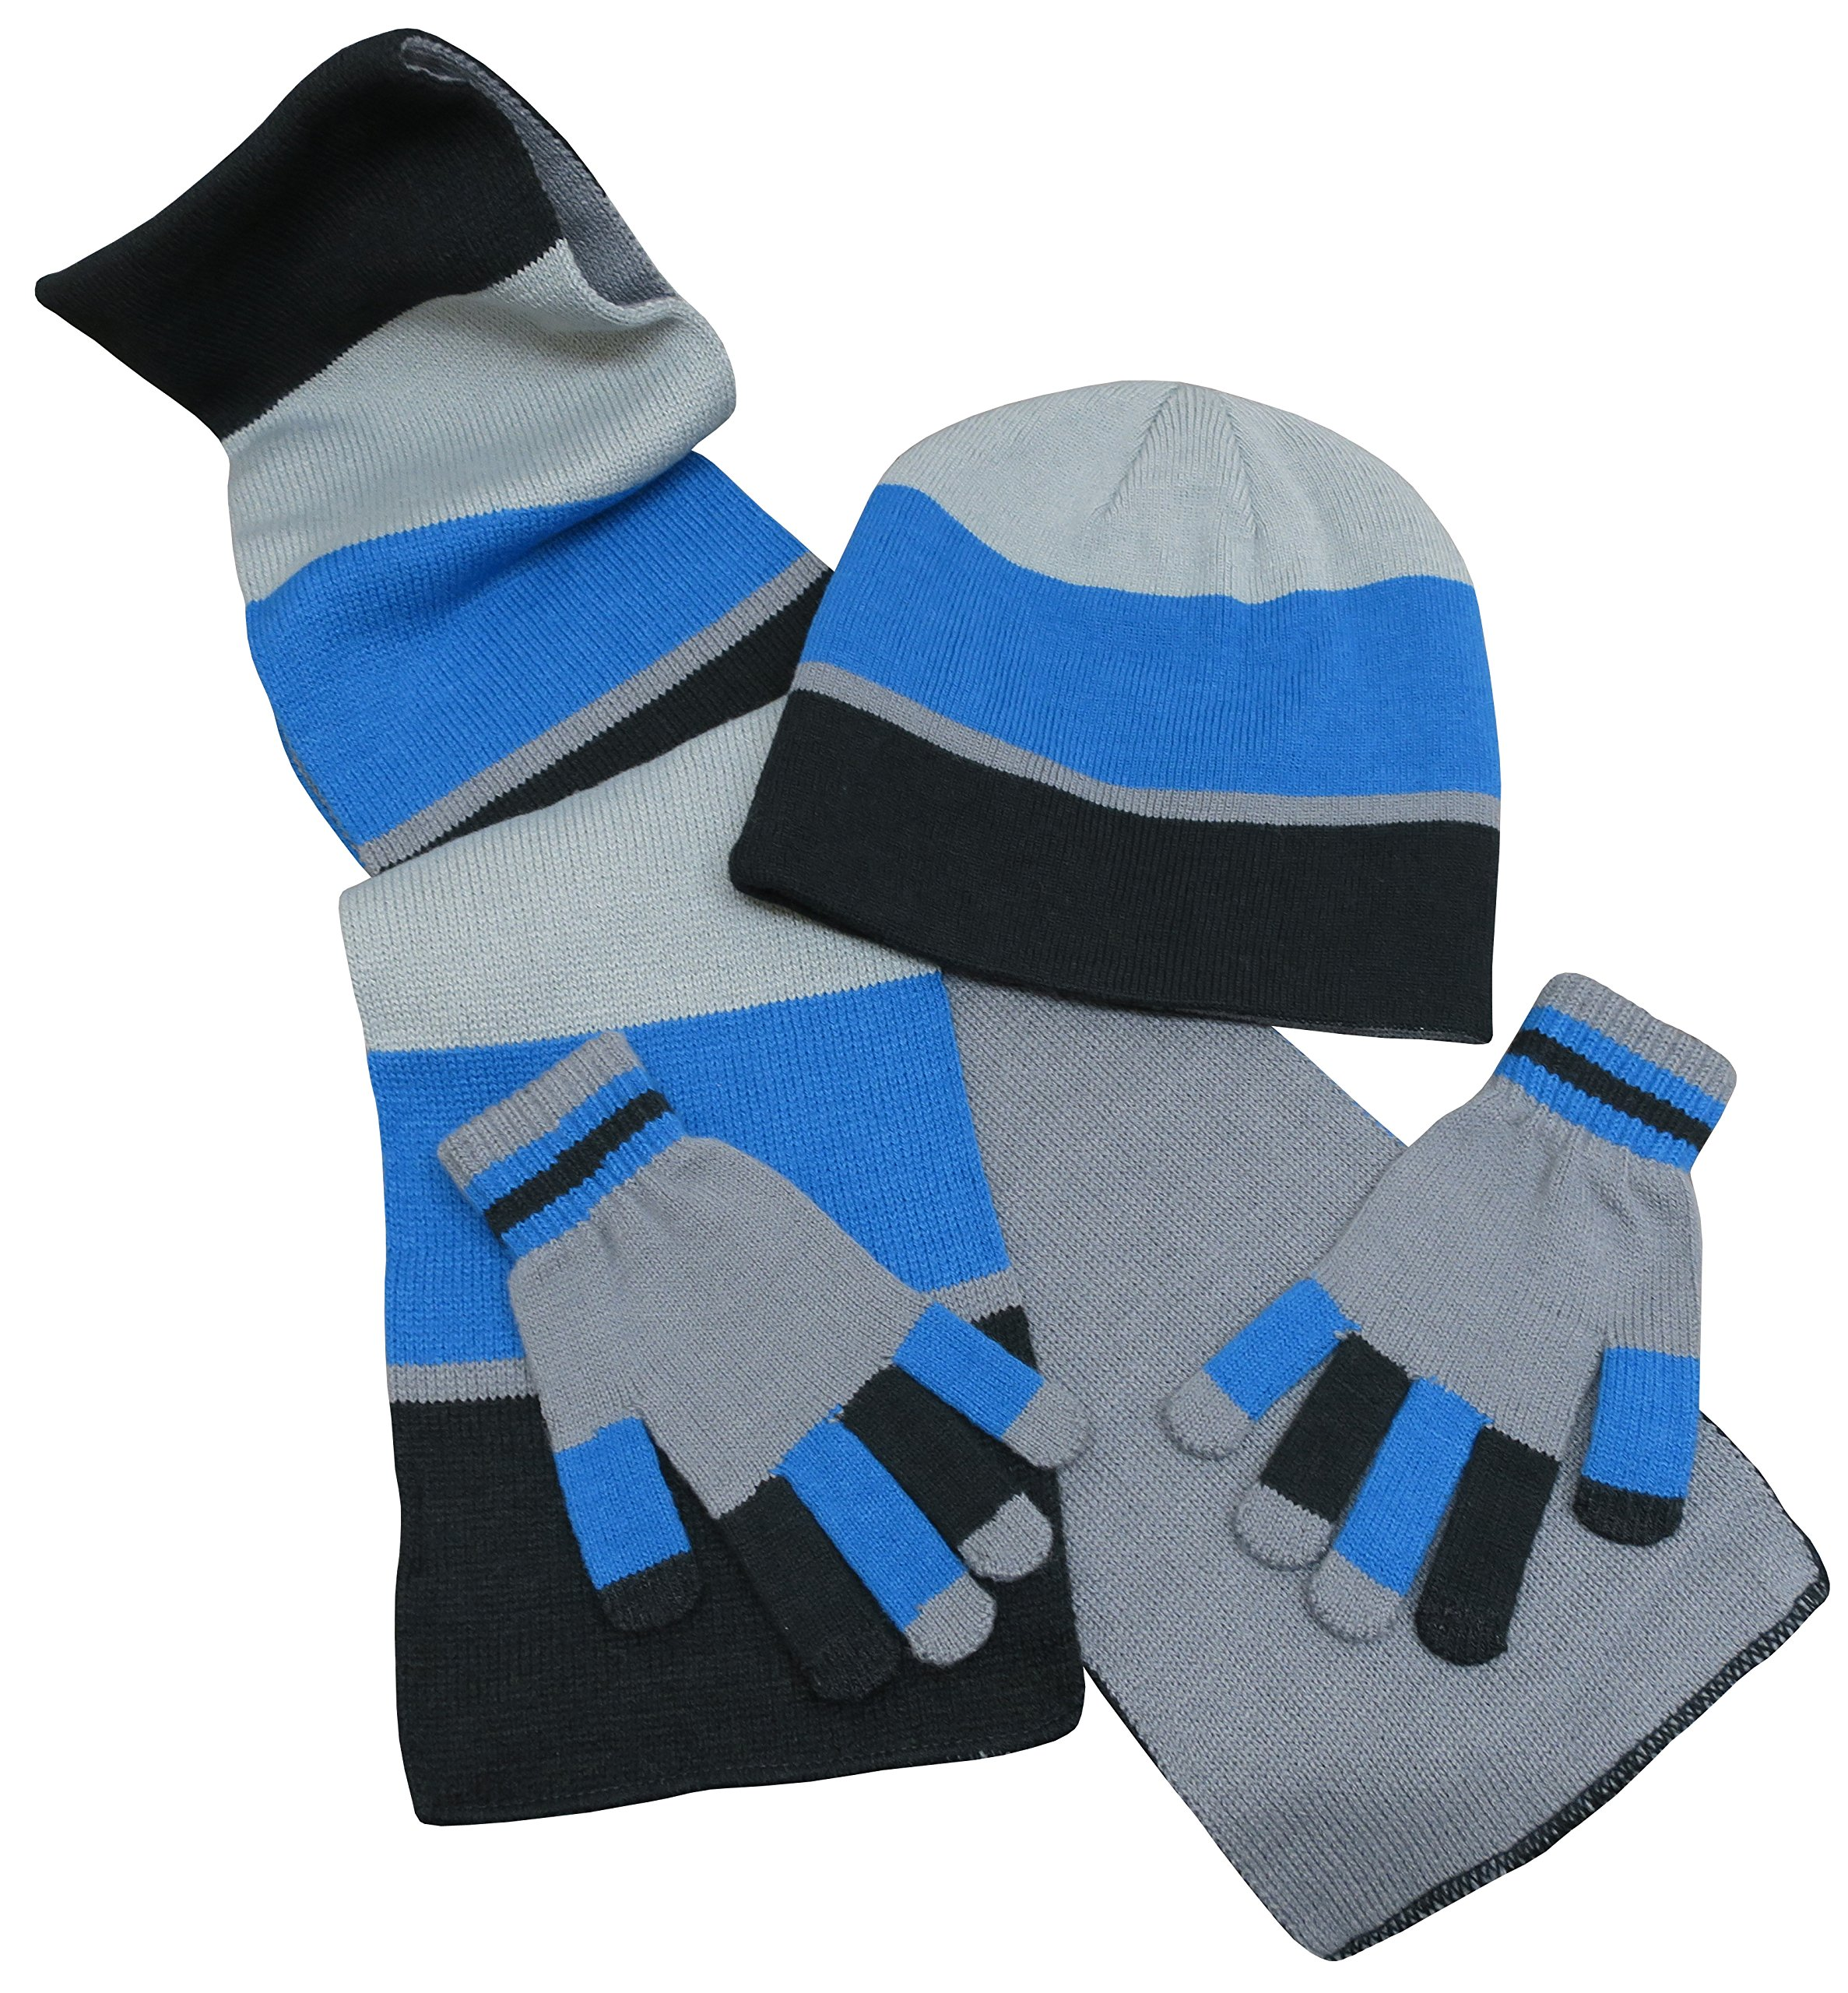 c35d549b4b532 Get Quotations · N Ice Caps Kids Reversible Knitted Hat Scarf Magic Stretch  Glove Accessory Set